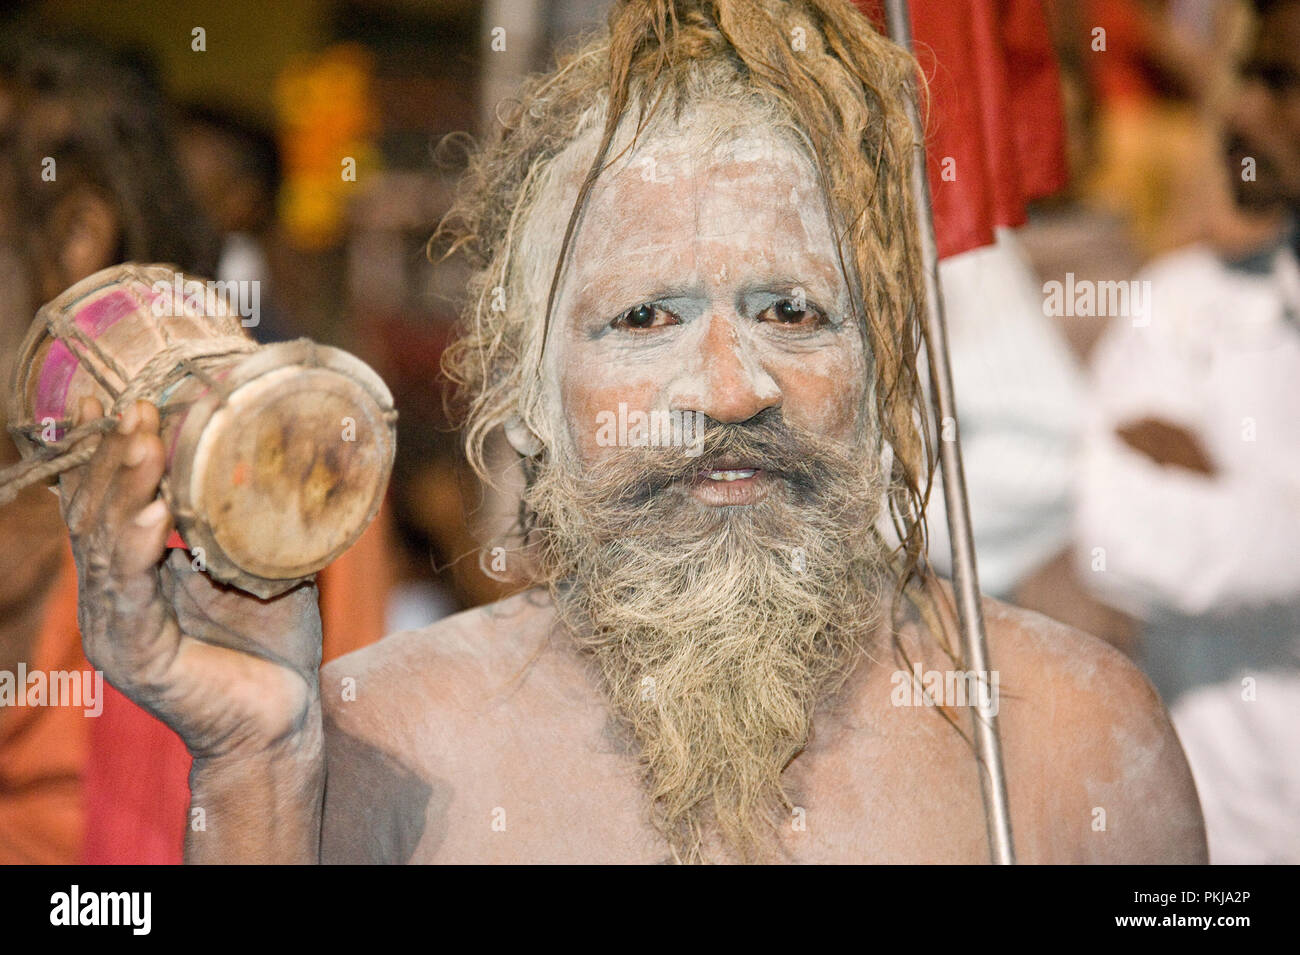 Portrait of a Naga Sadhu holy man at nashik maharashtra India - Stock Image